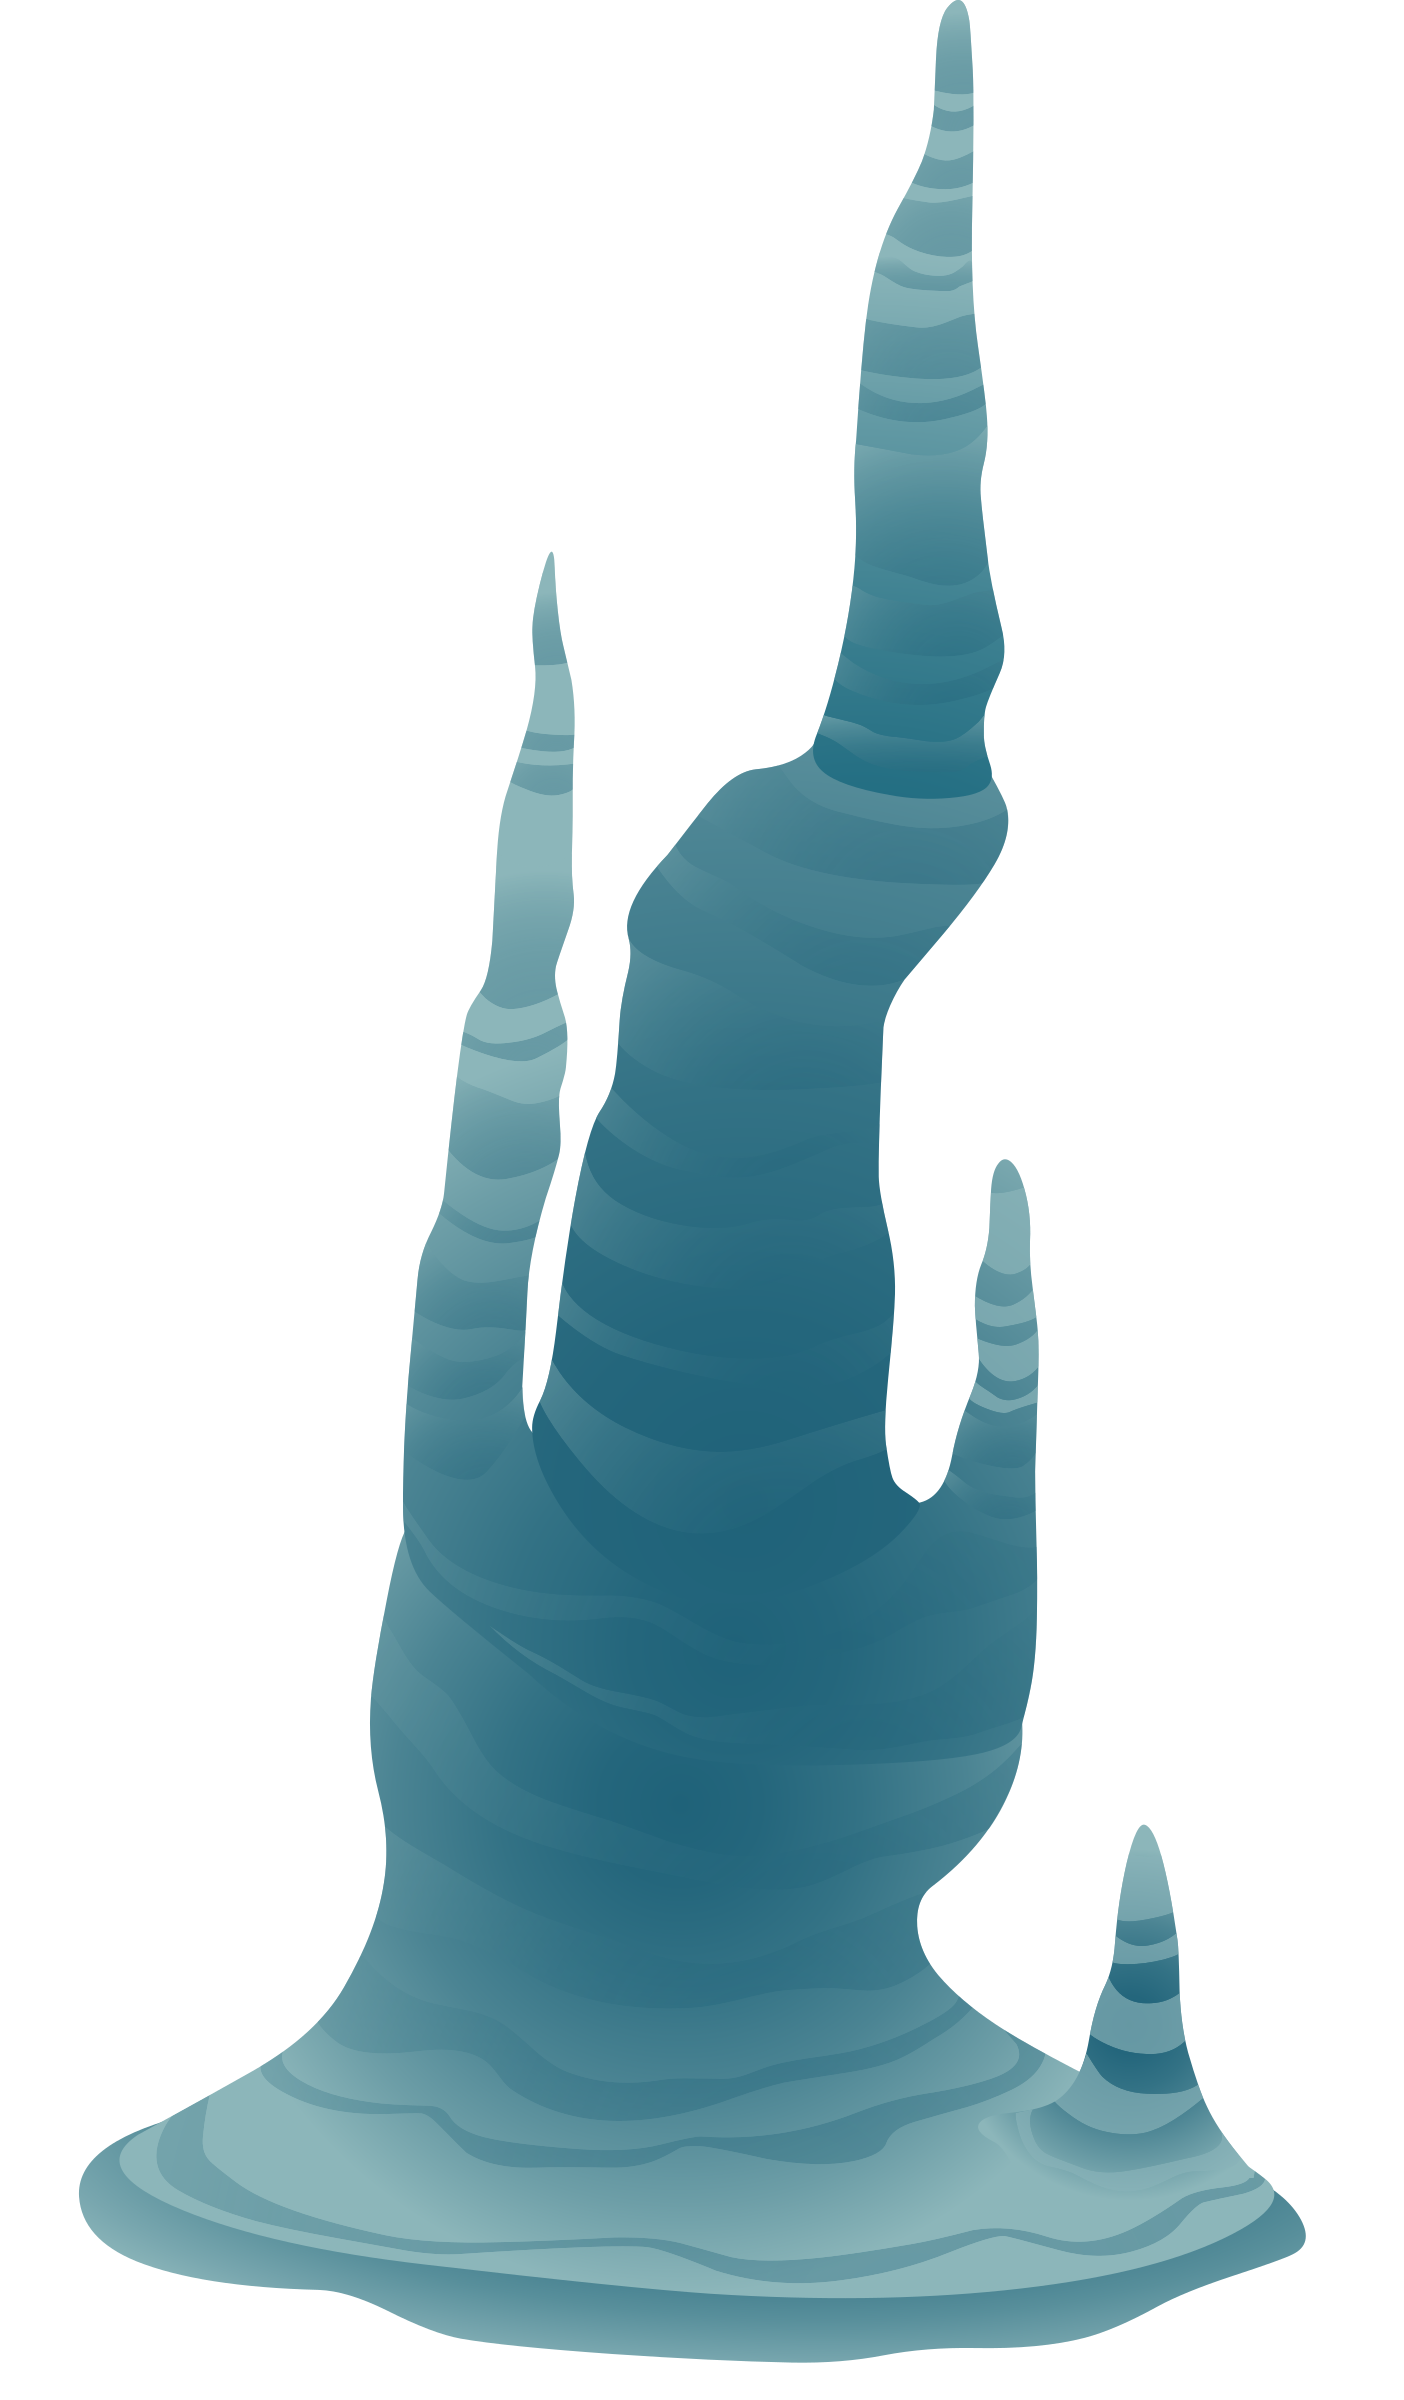 Ilmenskie cave big image. Icicle clipart blue